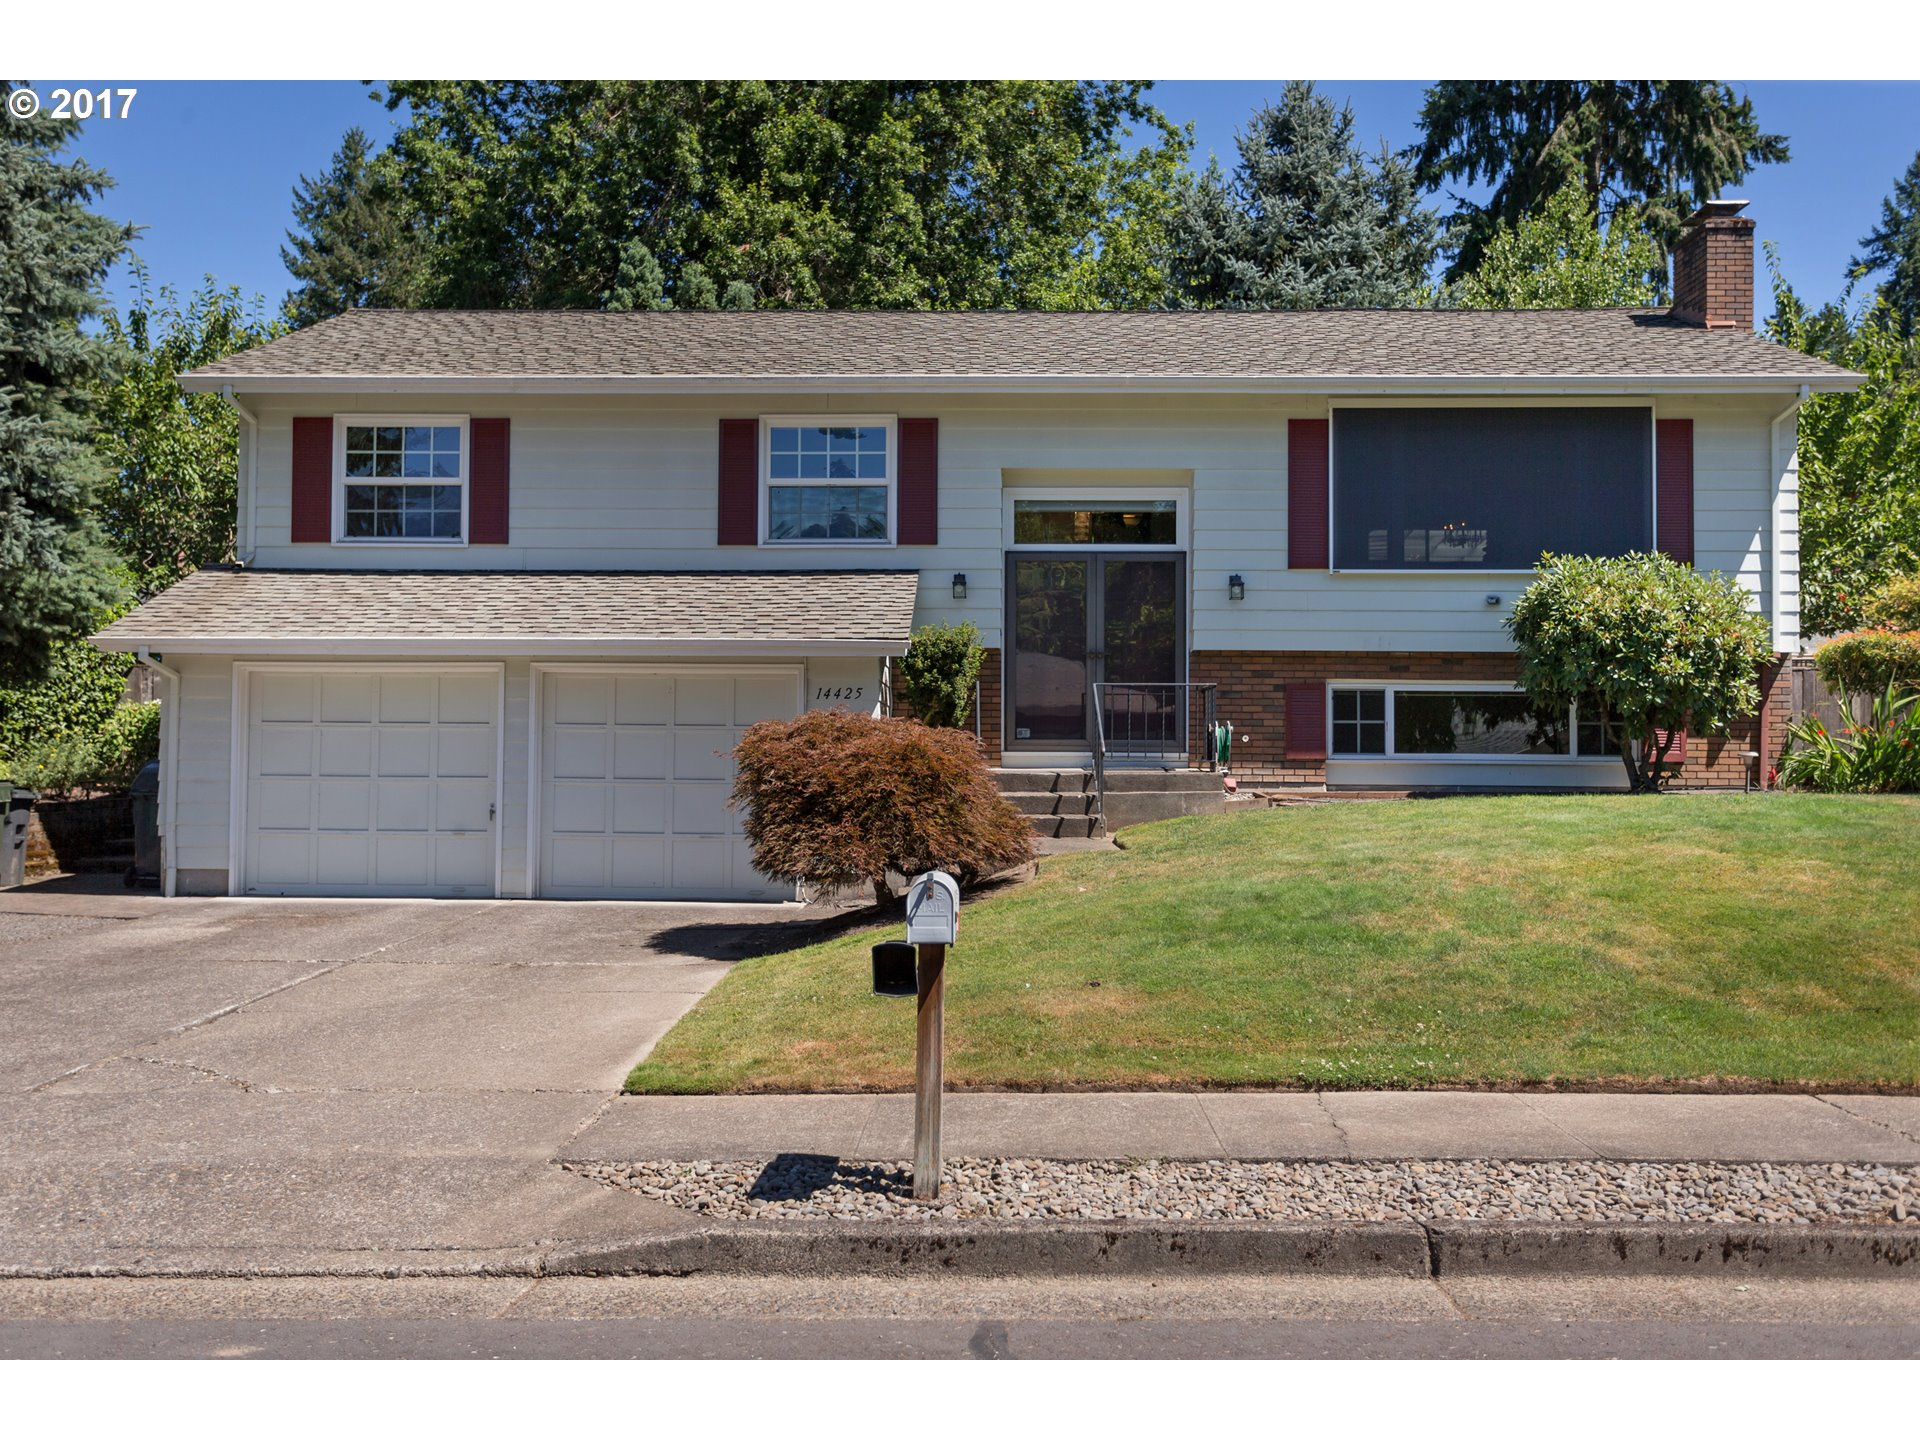 High demand Hyland Hills, pride of ownership/original owner. 4 bd/3 full bths features Milgard vinyl windows, top o'line kitch SS appliances, A/C, 50+ year roof (transferable guarantee). Hardwoods, slab granite, built-ins for lots of storage. Lwr level provides potential for in-laws qtrs w/walk-in shower. Lwr level den/offc, 2 level cedar decking overlooks stunning park-like backyd w/water feature. RV parking potential